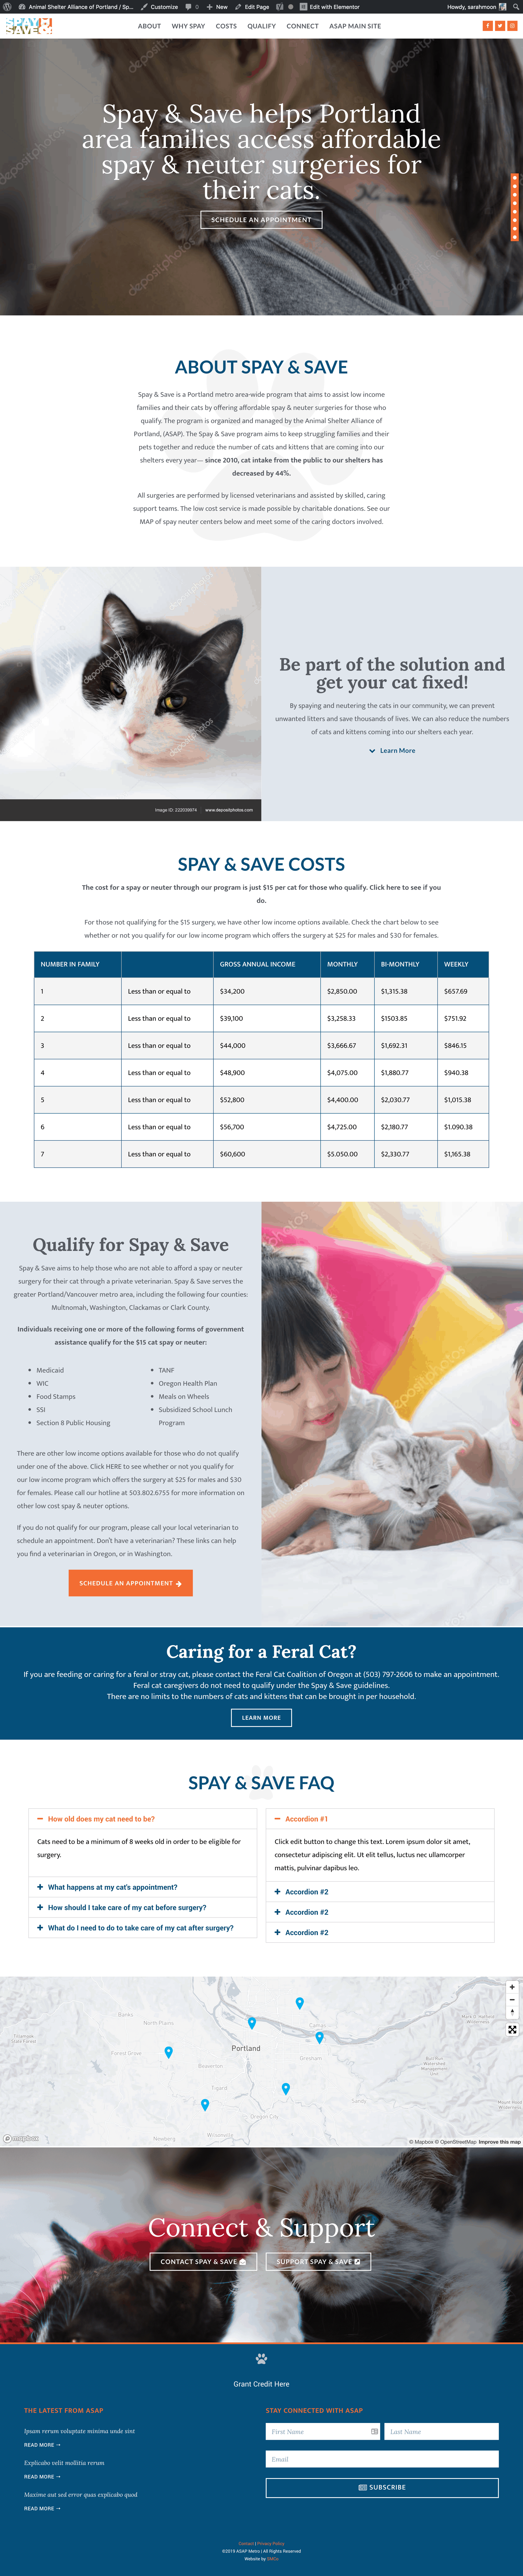 ASAP Metro Spay and Save Website Redesign